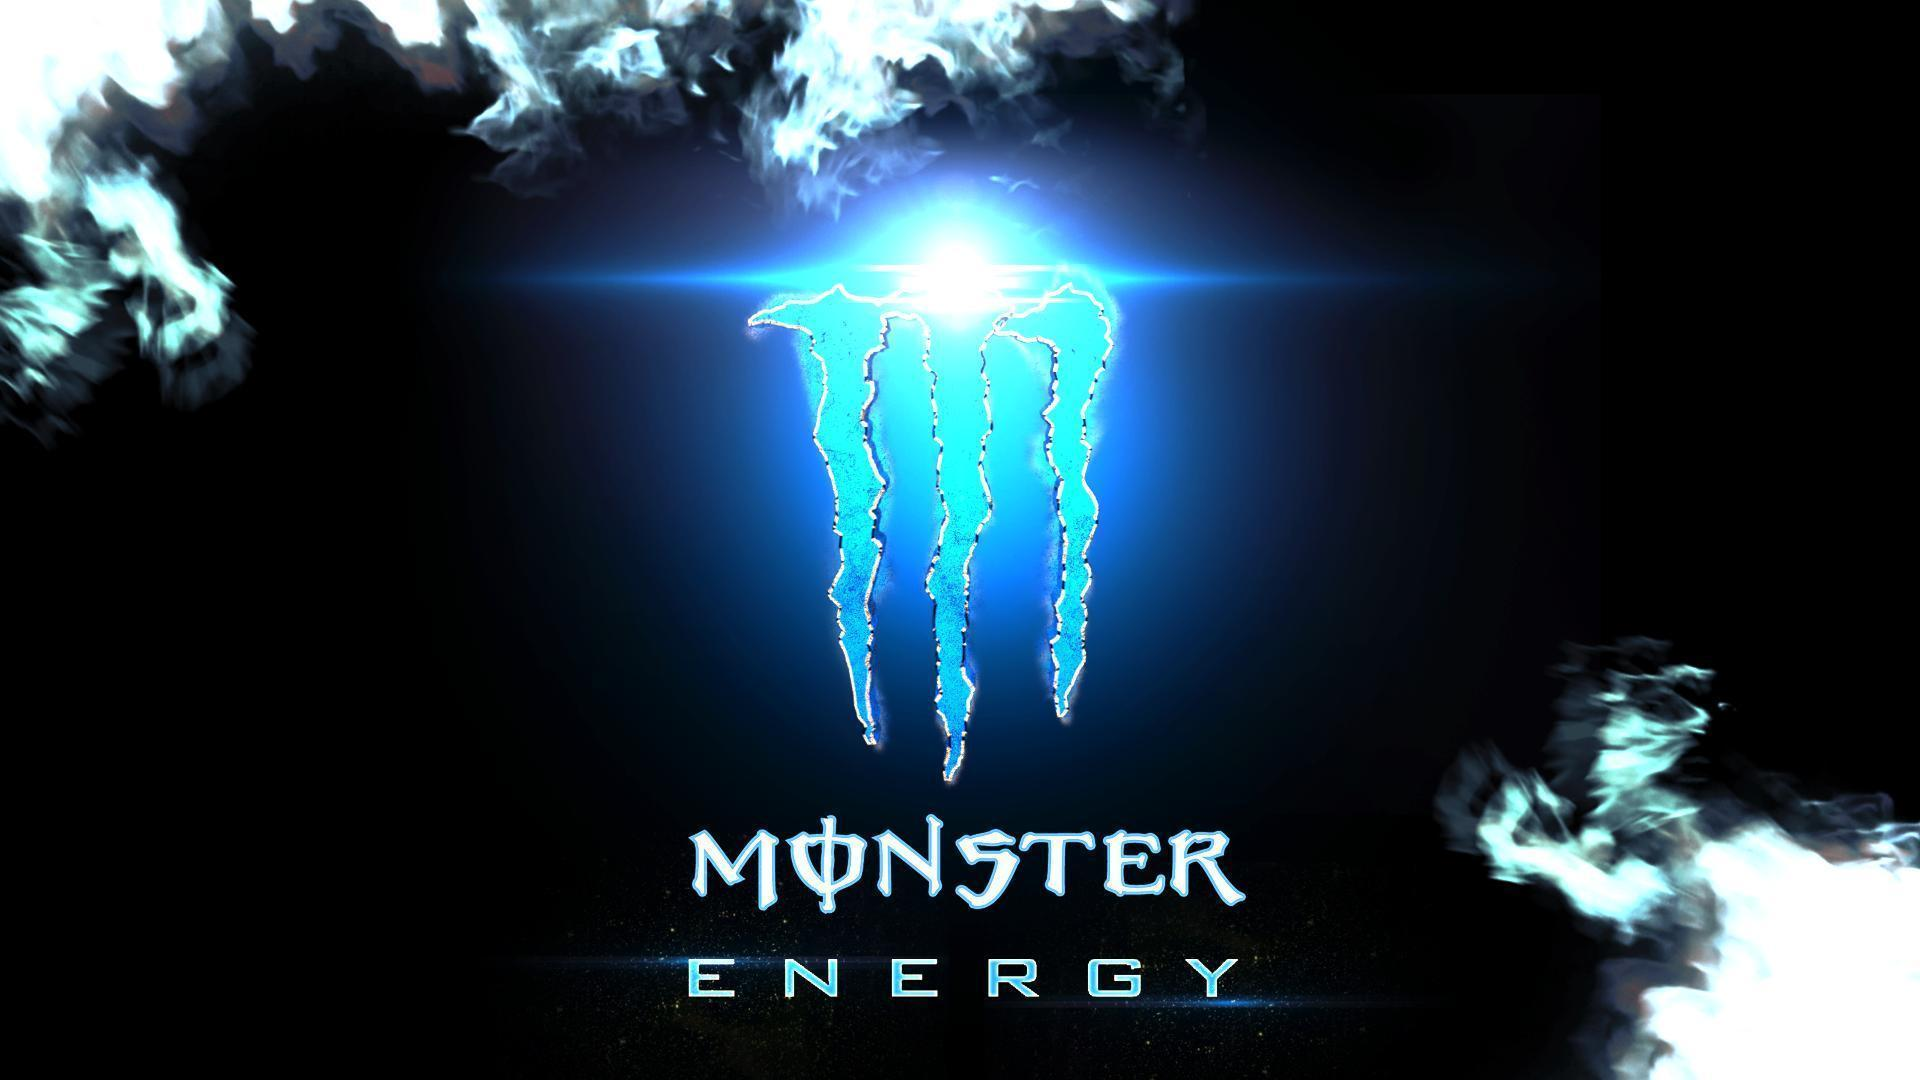 Monster Energy Wallpapers HD 1920x1080